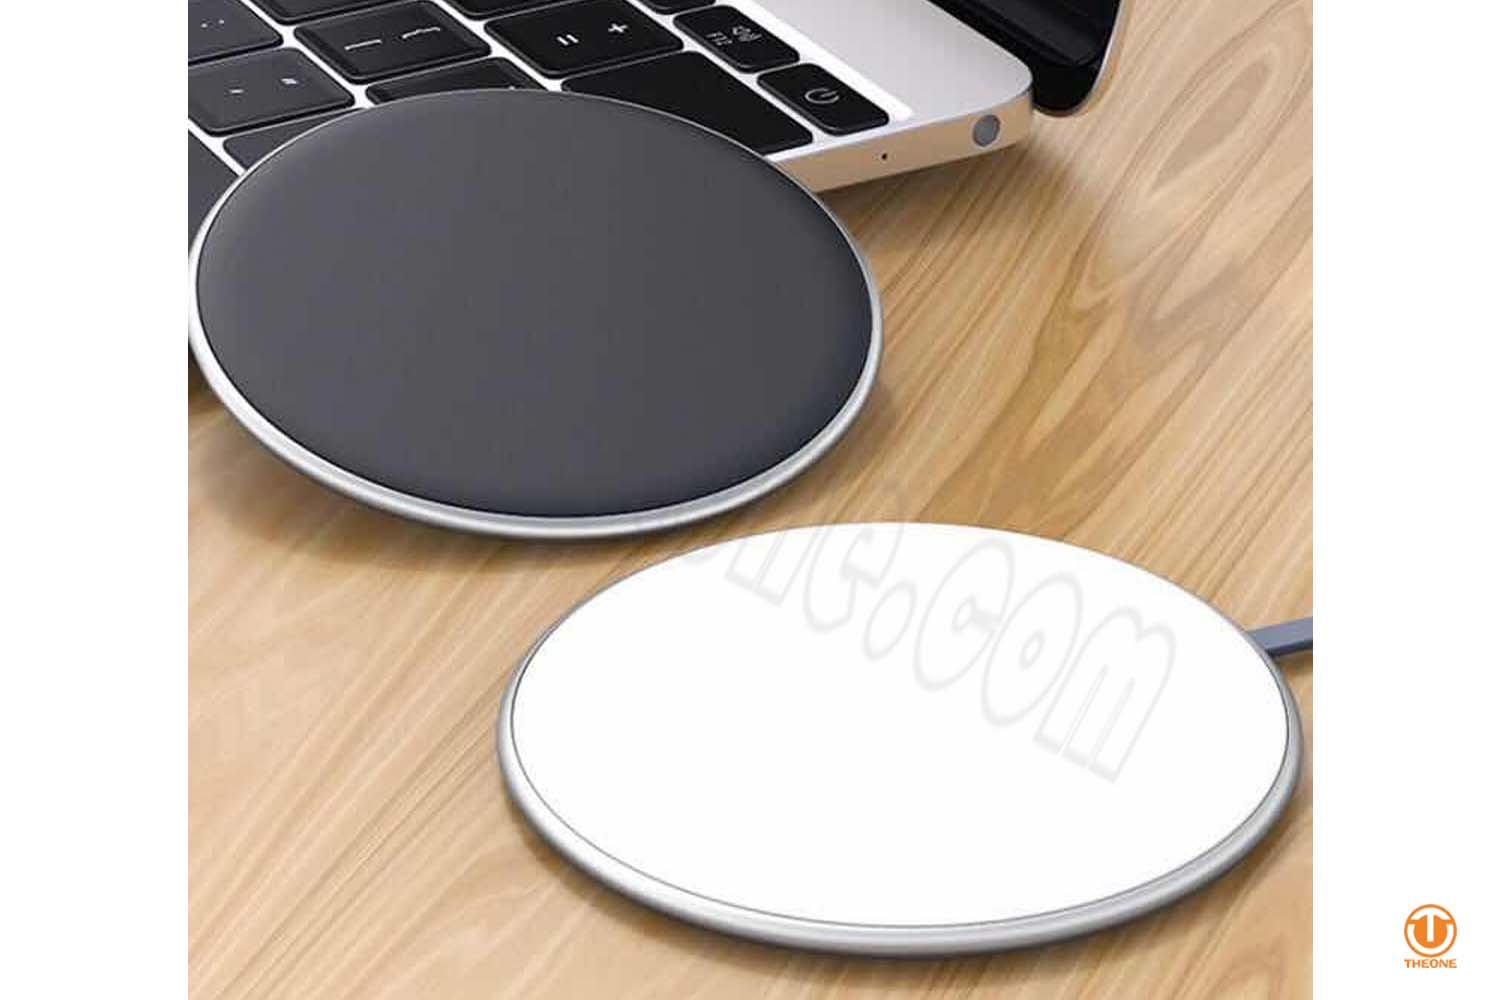 tw01 2 wireless charger